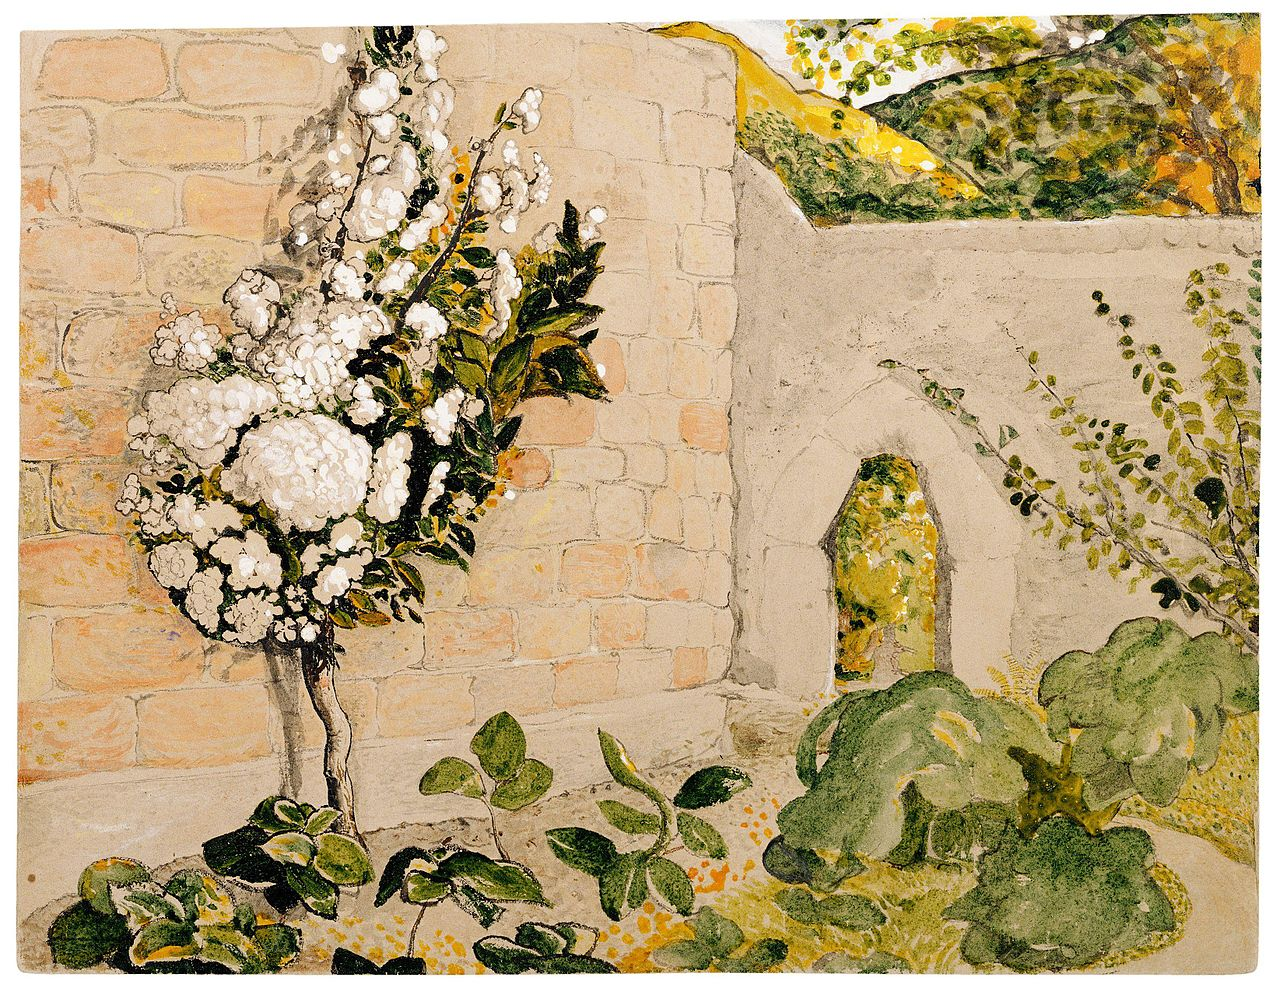 1280px-Samuel_Palmer_-_Pear_Tree_in_a_Walled_Garden.jpg